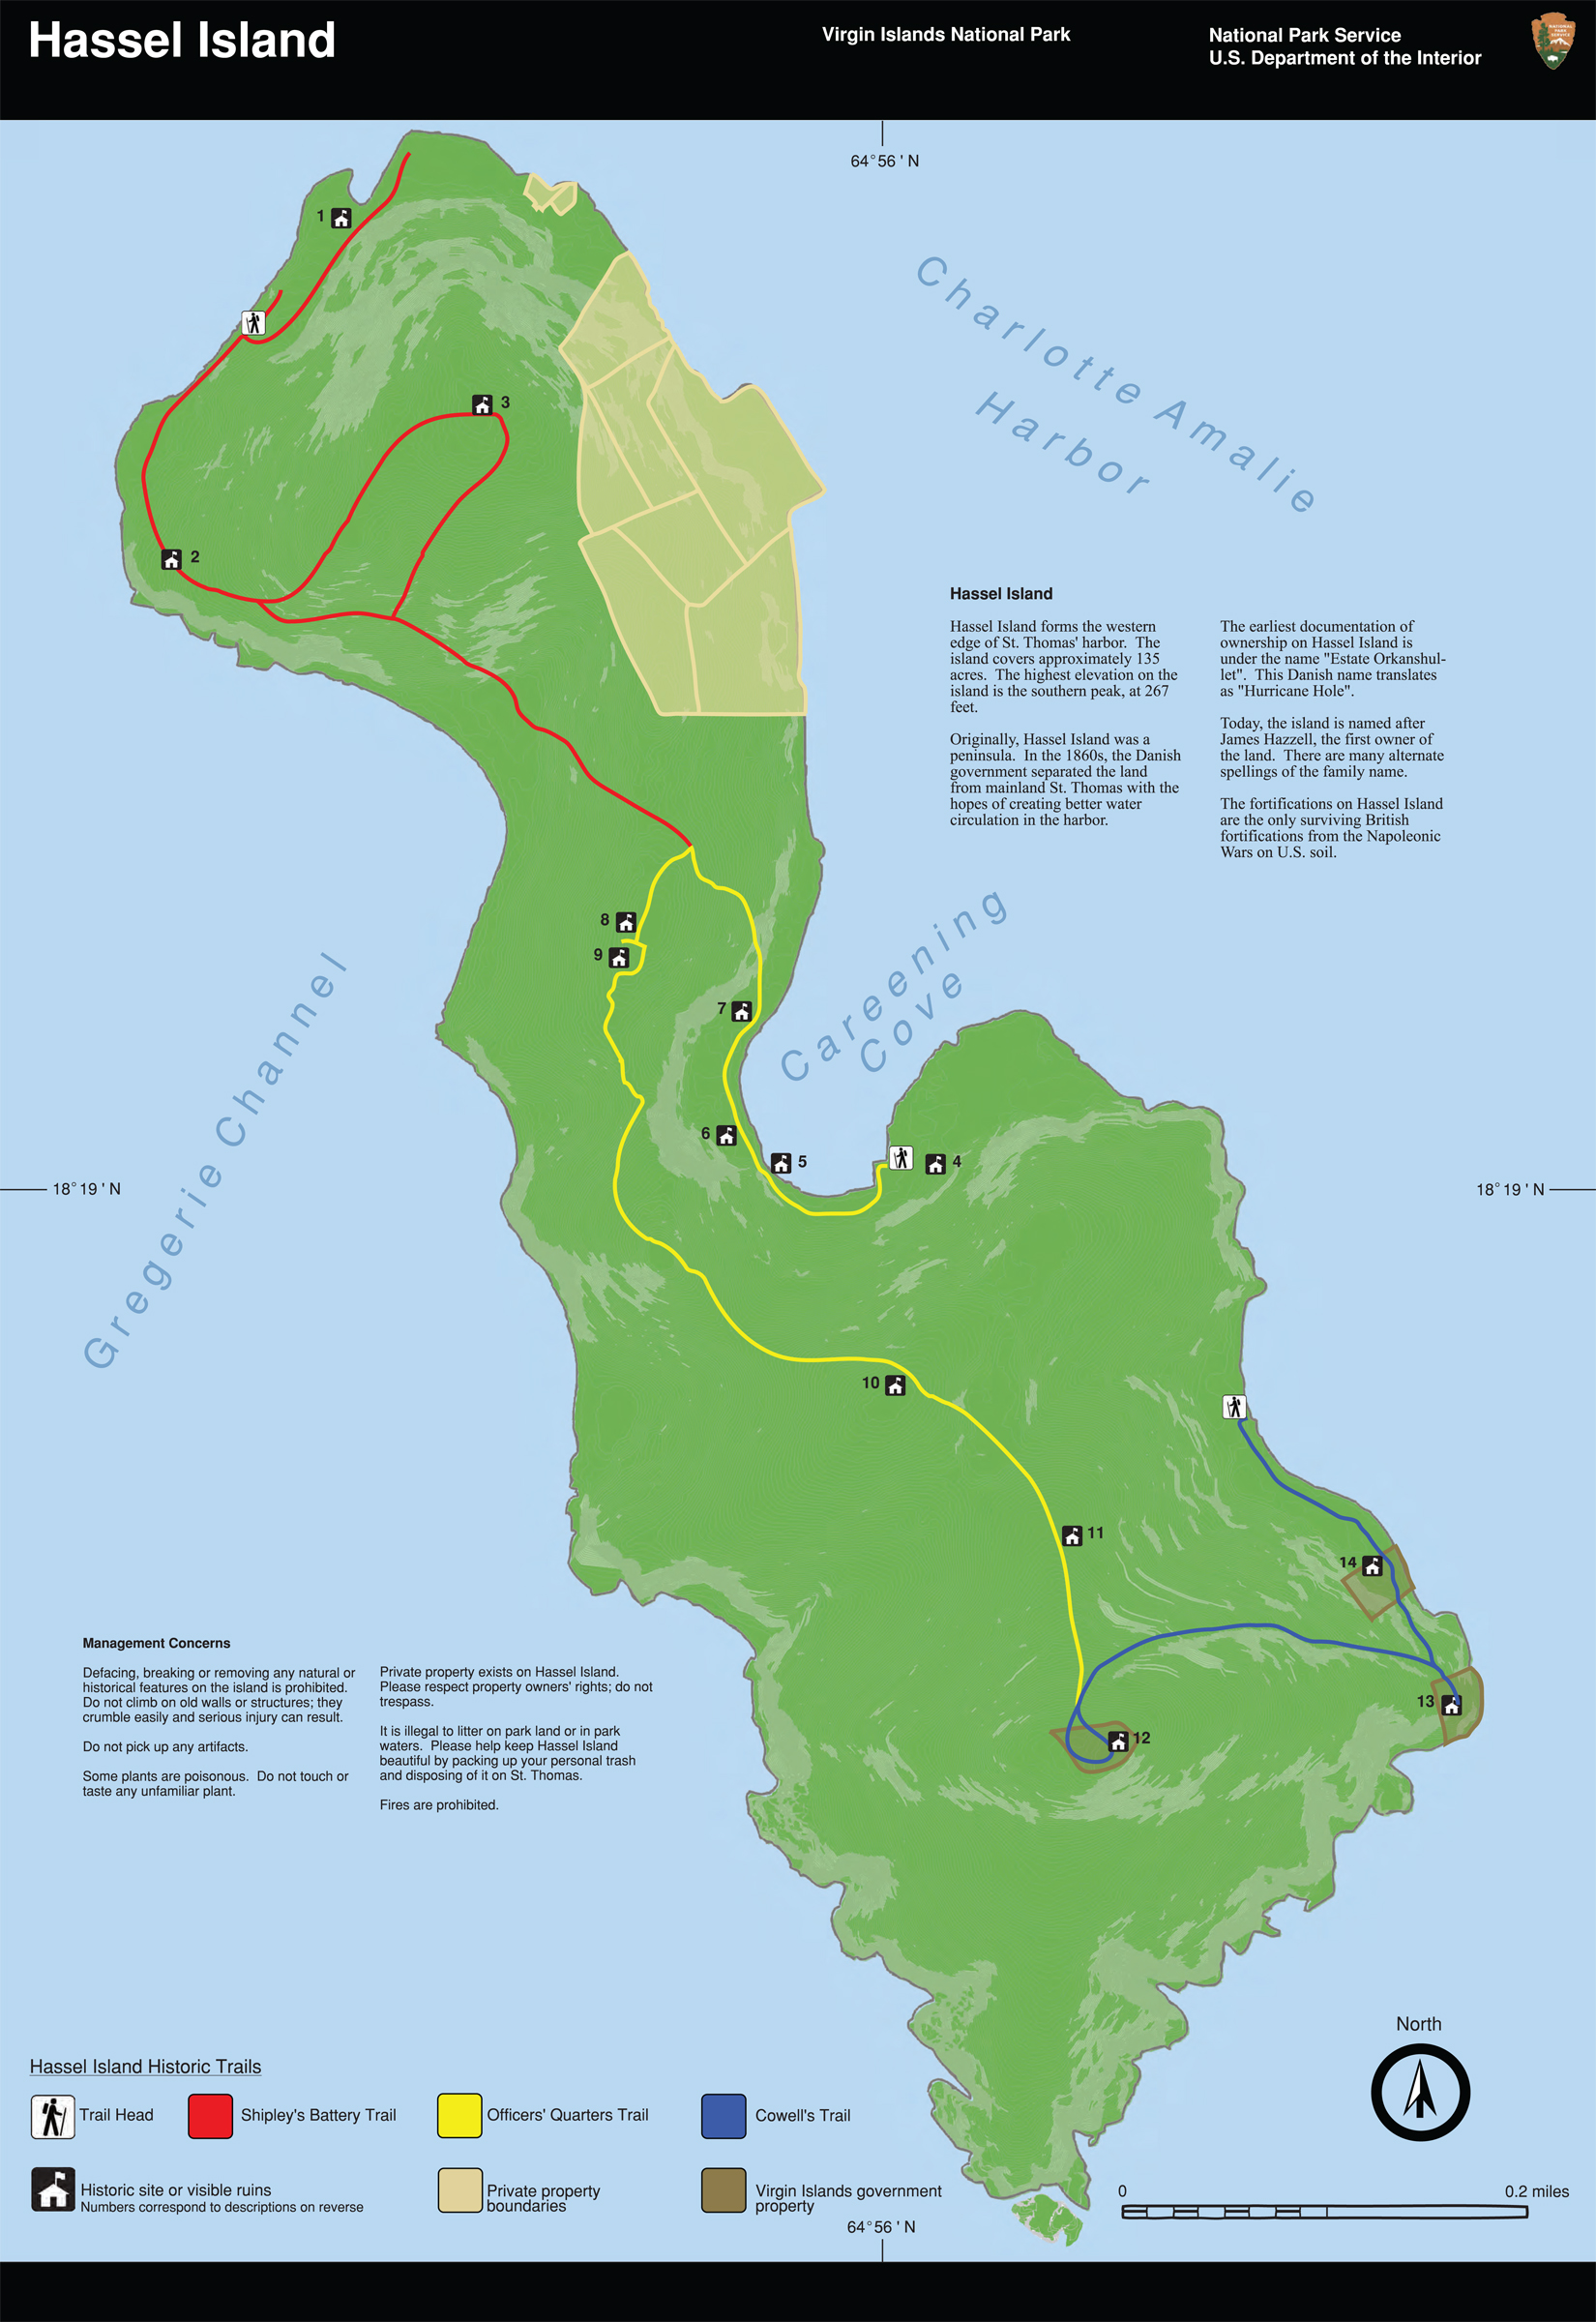 VIEW THE TRAIL MAP